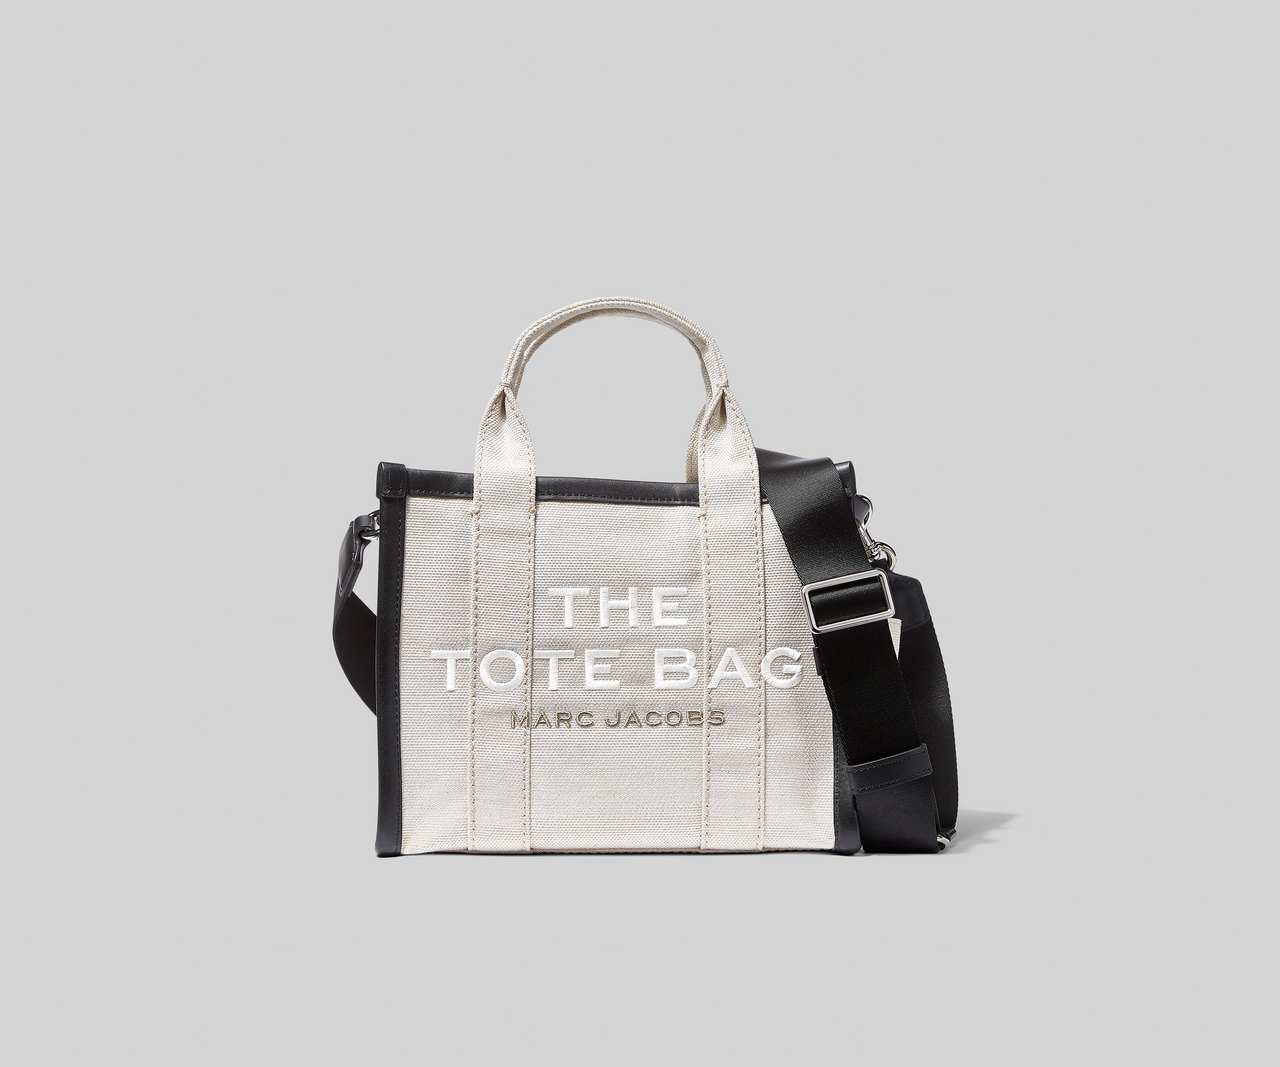 Marc Jacobs The Summer Mini Tote Bag